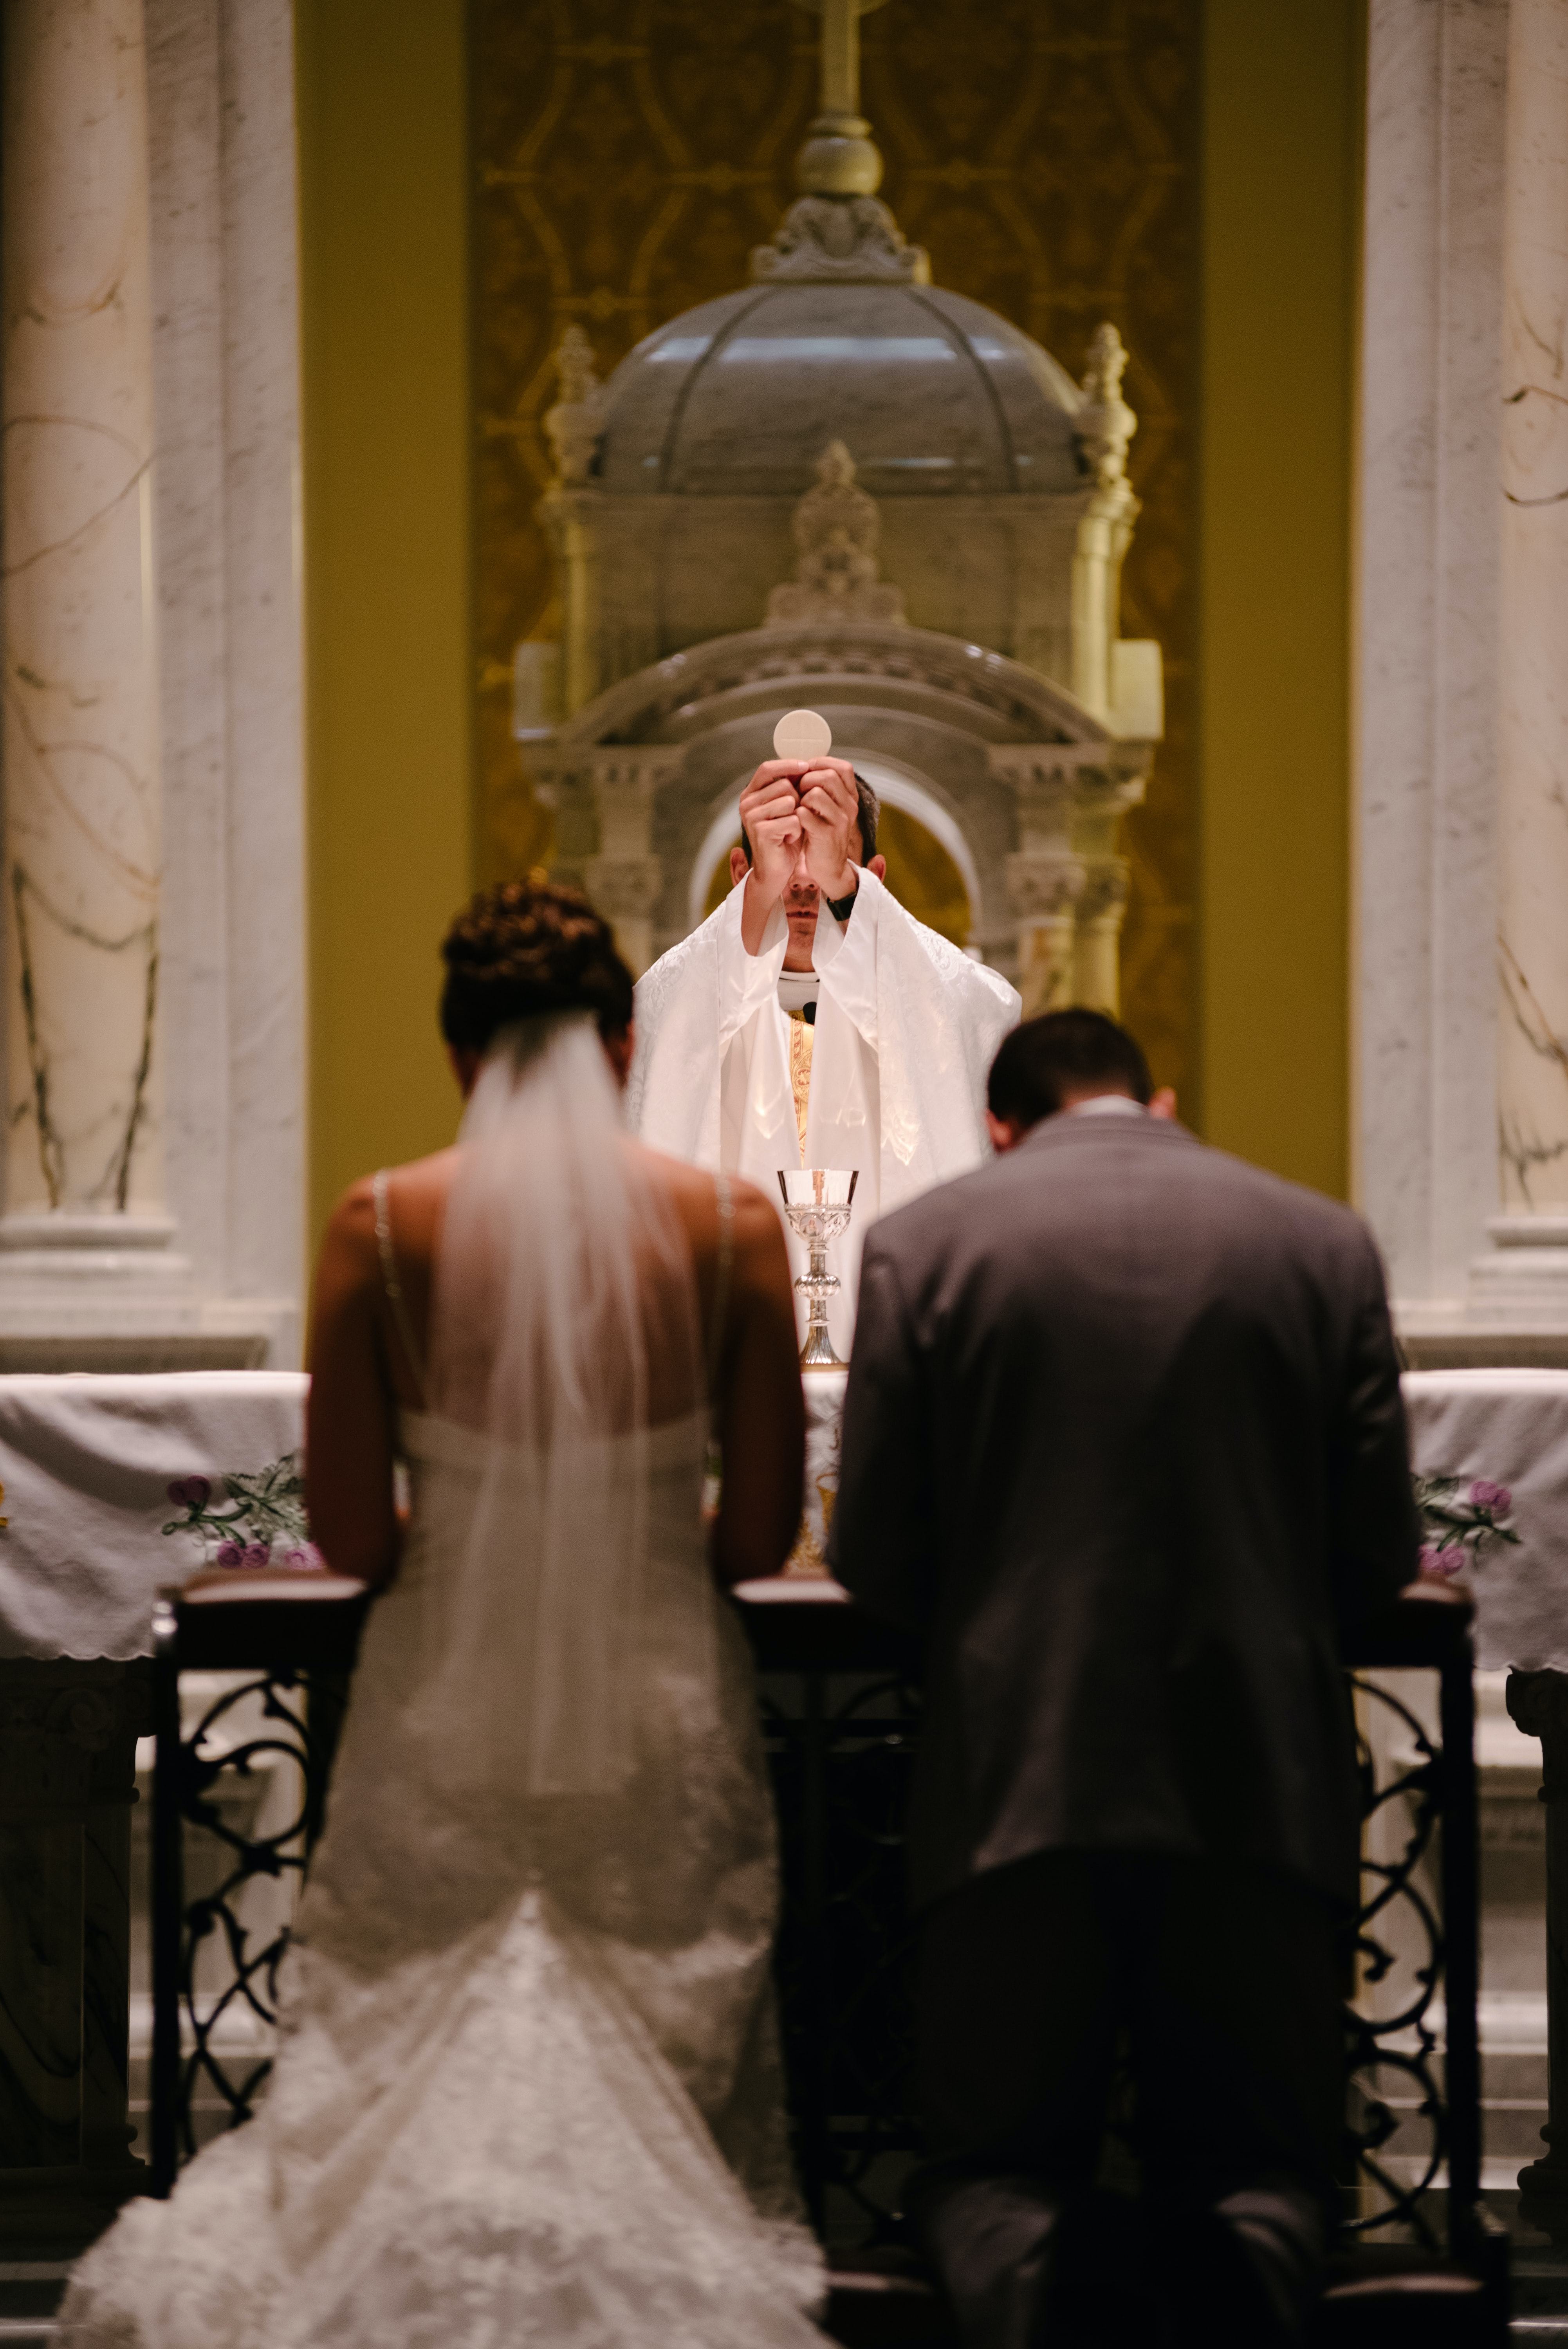 A priest holds up a communion wafer to a couple at the altar at a wedding